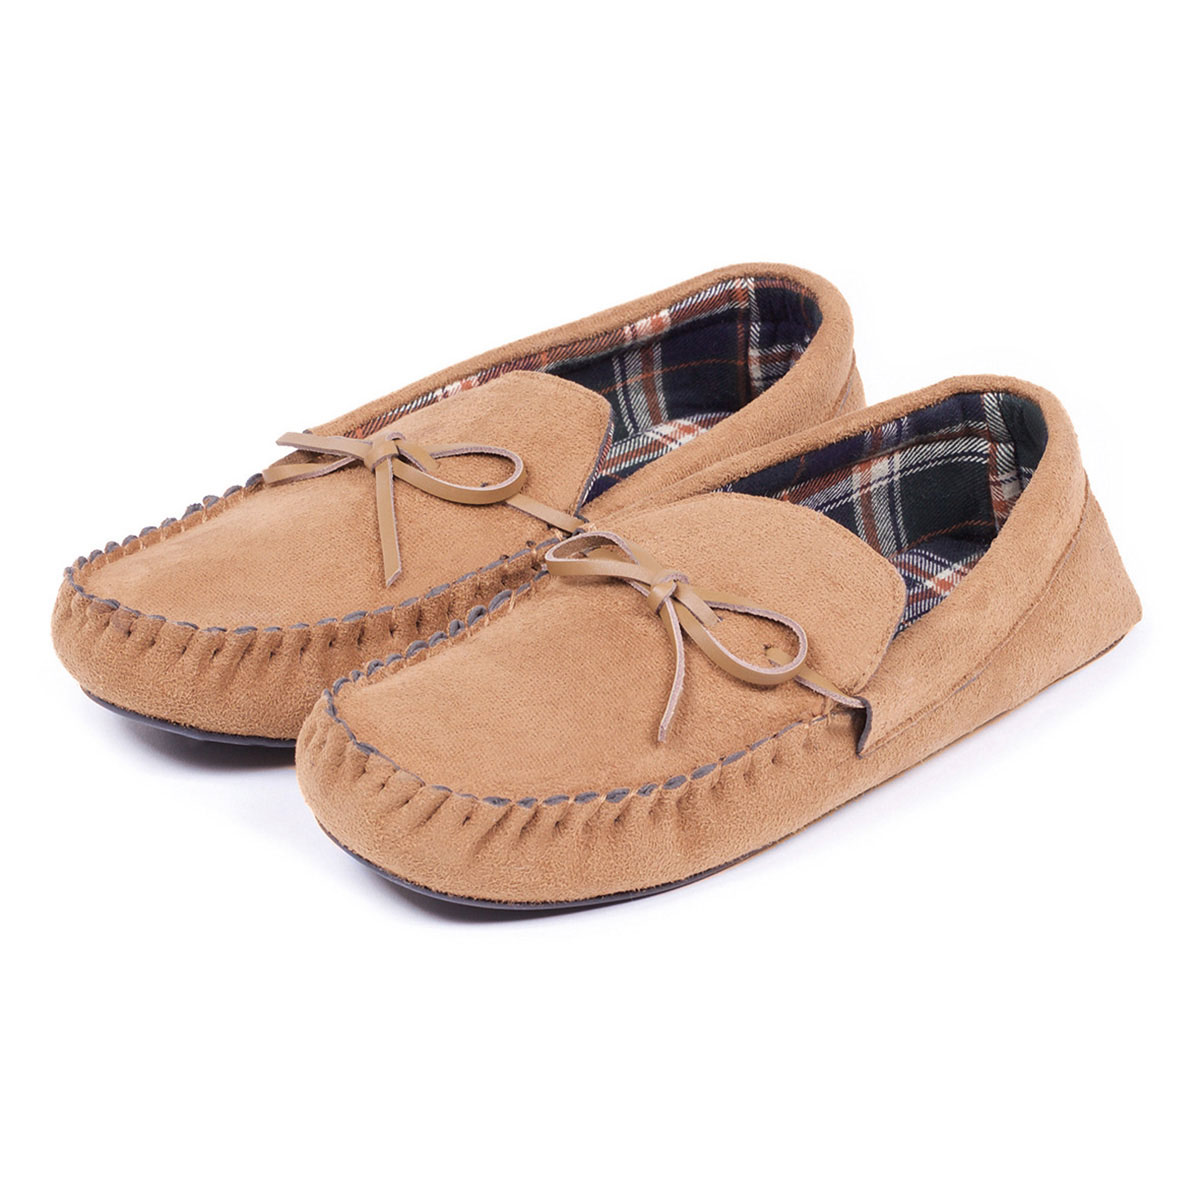 Totes Mens Suedette Moccasin With Check Lining Slippers Ebay